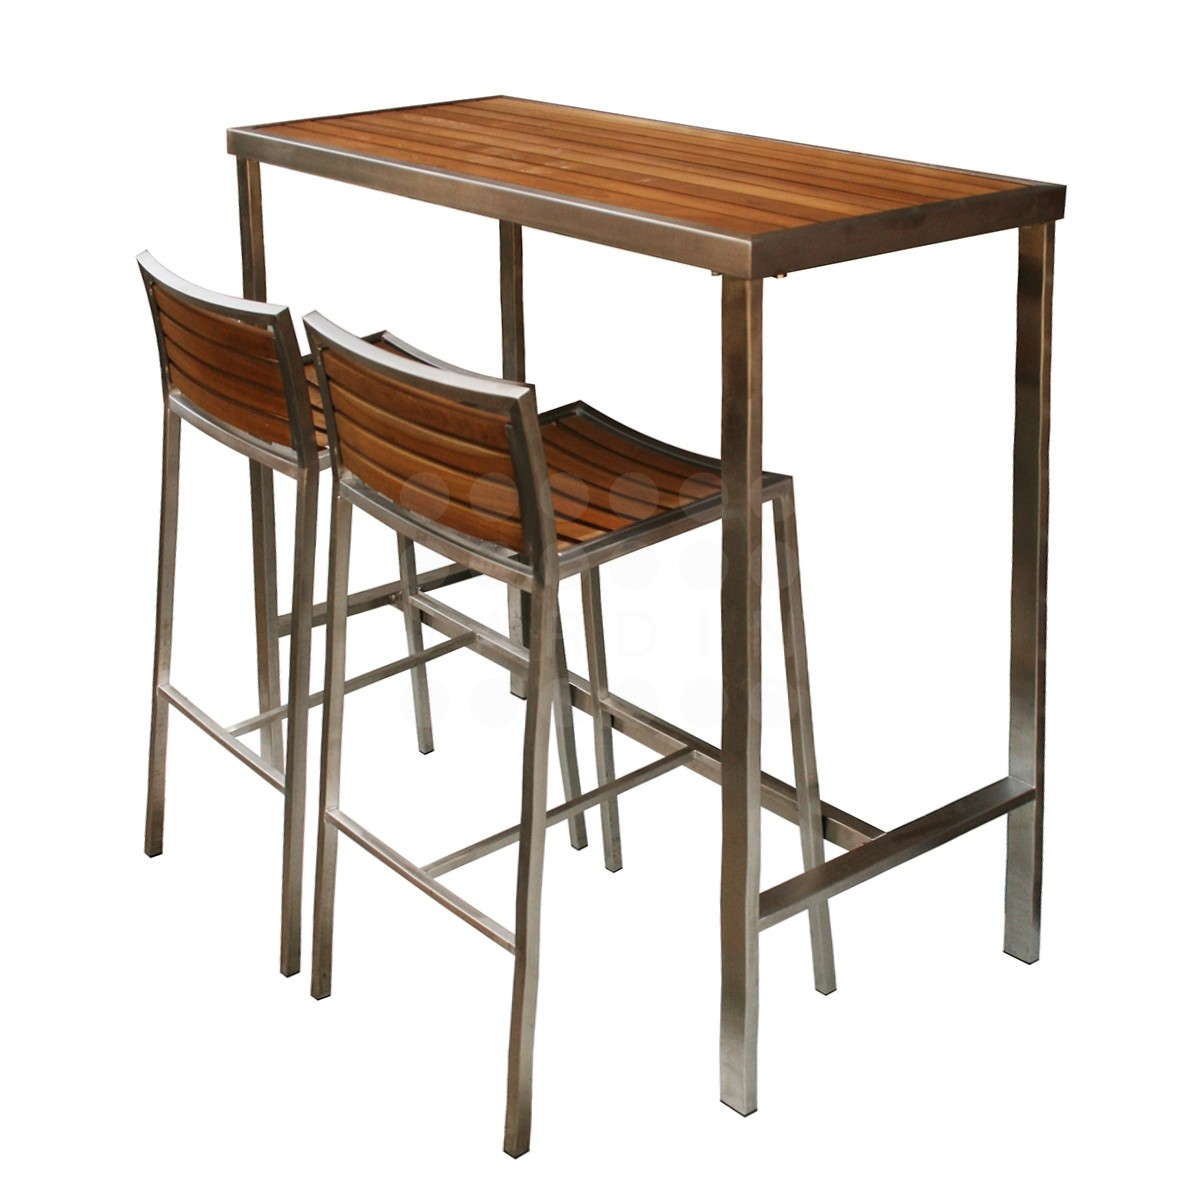 Evolve high bar table evolve teak stainless range jardin - Table bar murale ...